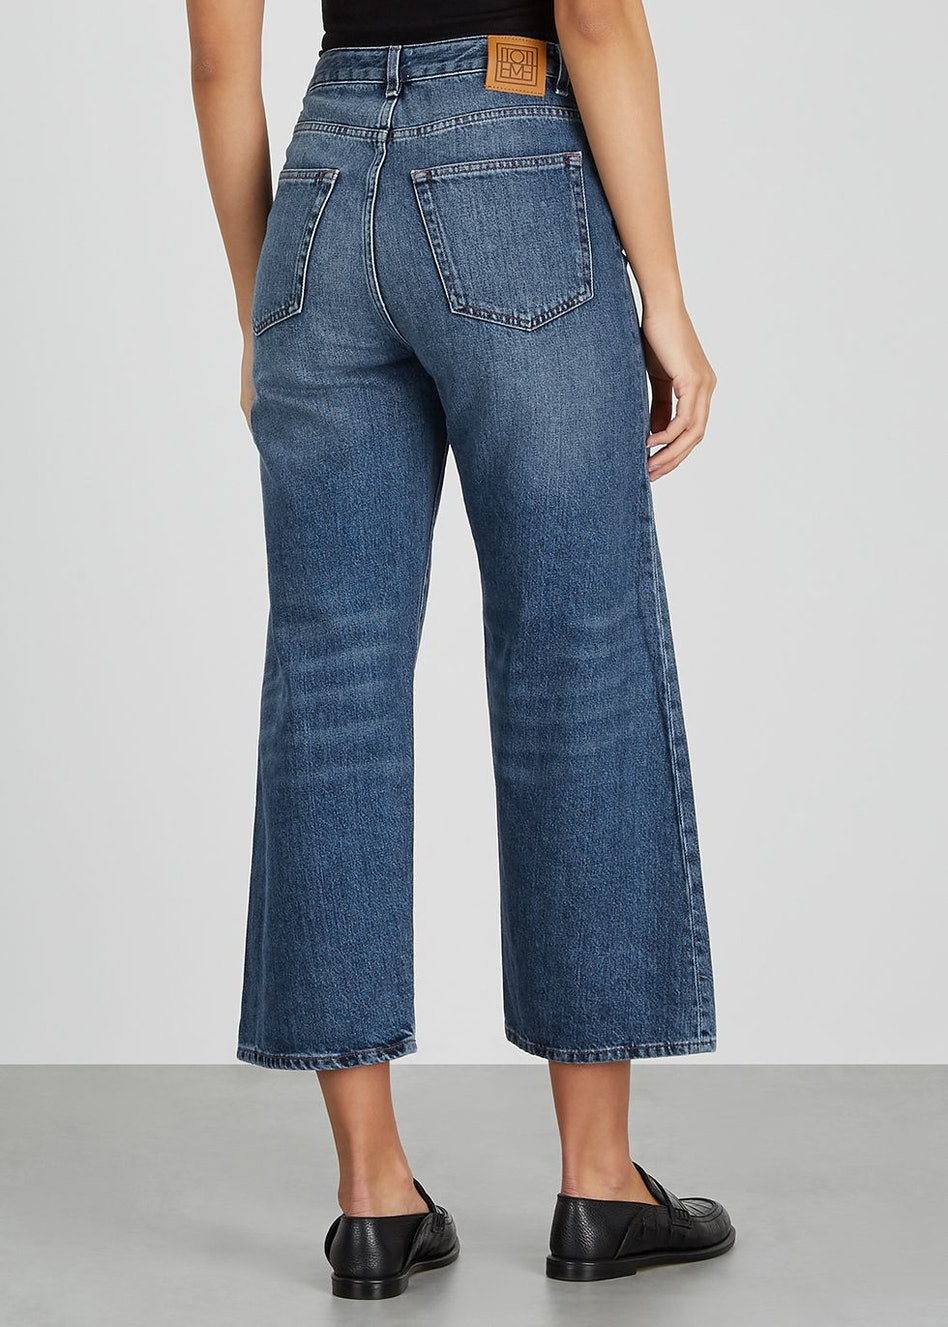 Blue cropped wide-leg jeans: additional image